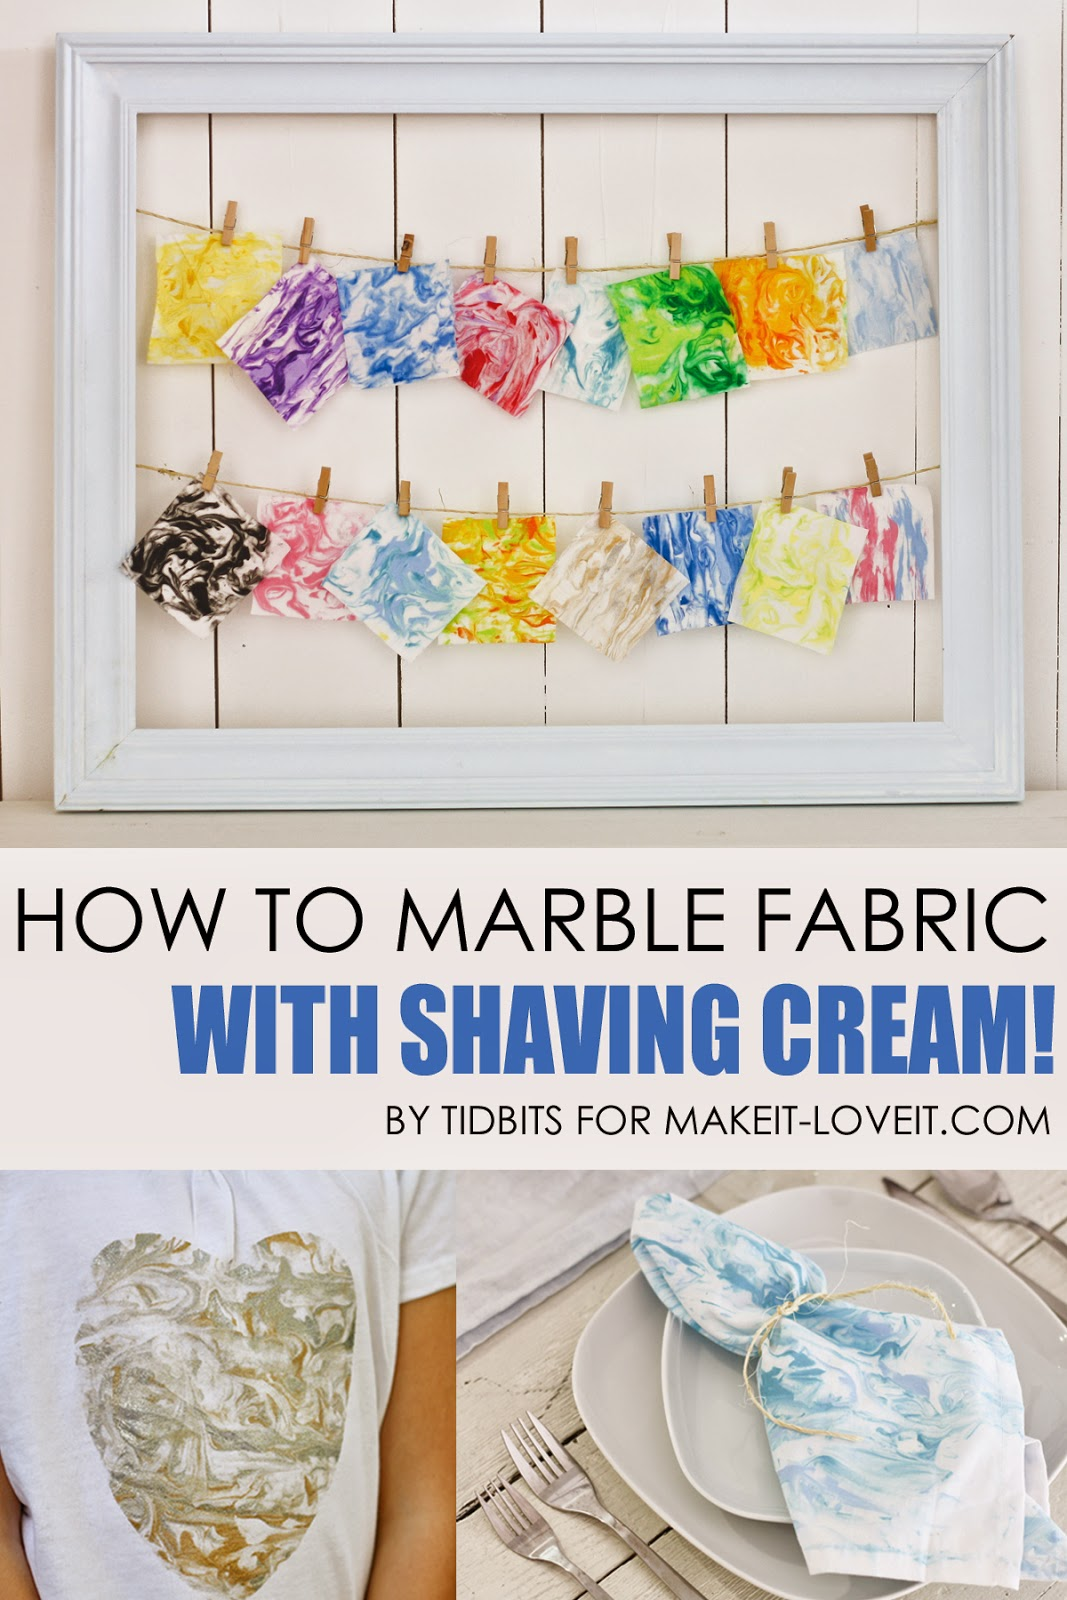 How to Marble Fabric (with shaving cream!!)